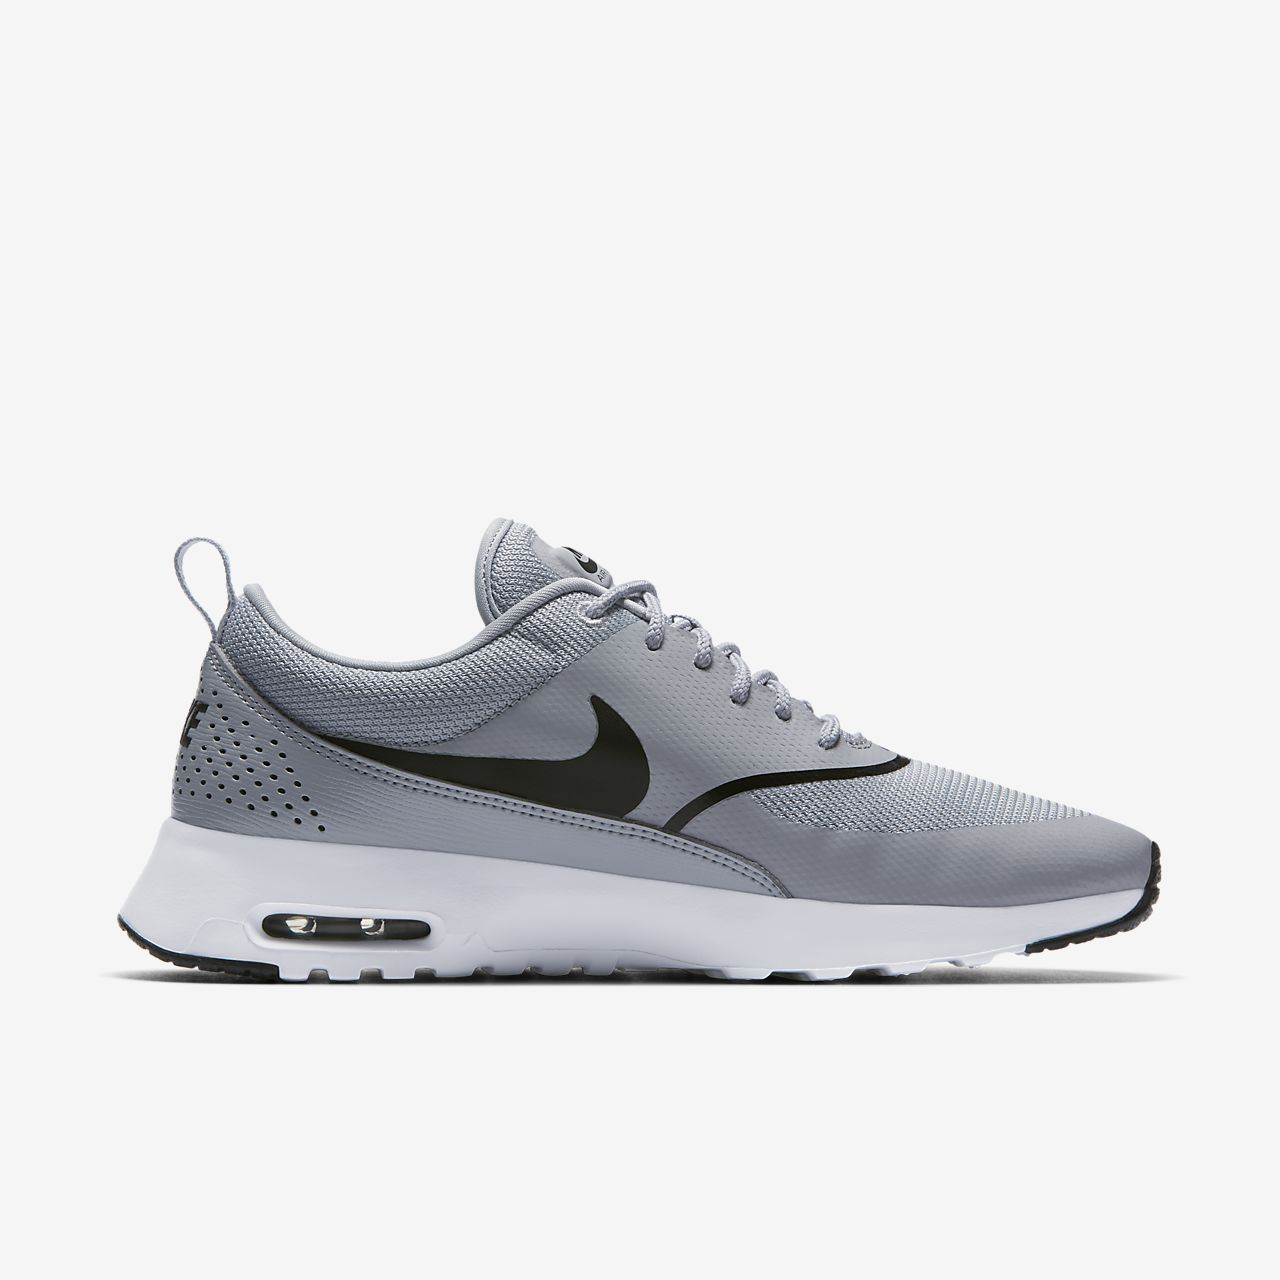 reputable site 742fc bdf88 ... Nike Air Max Thea Women s Shoe